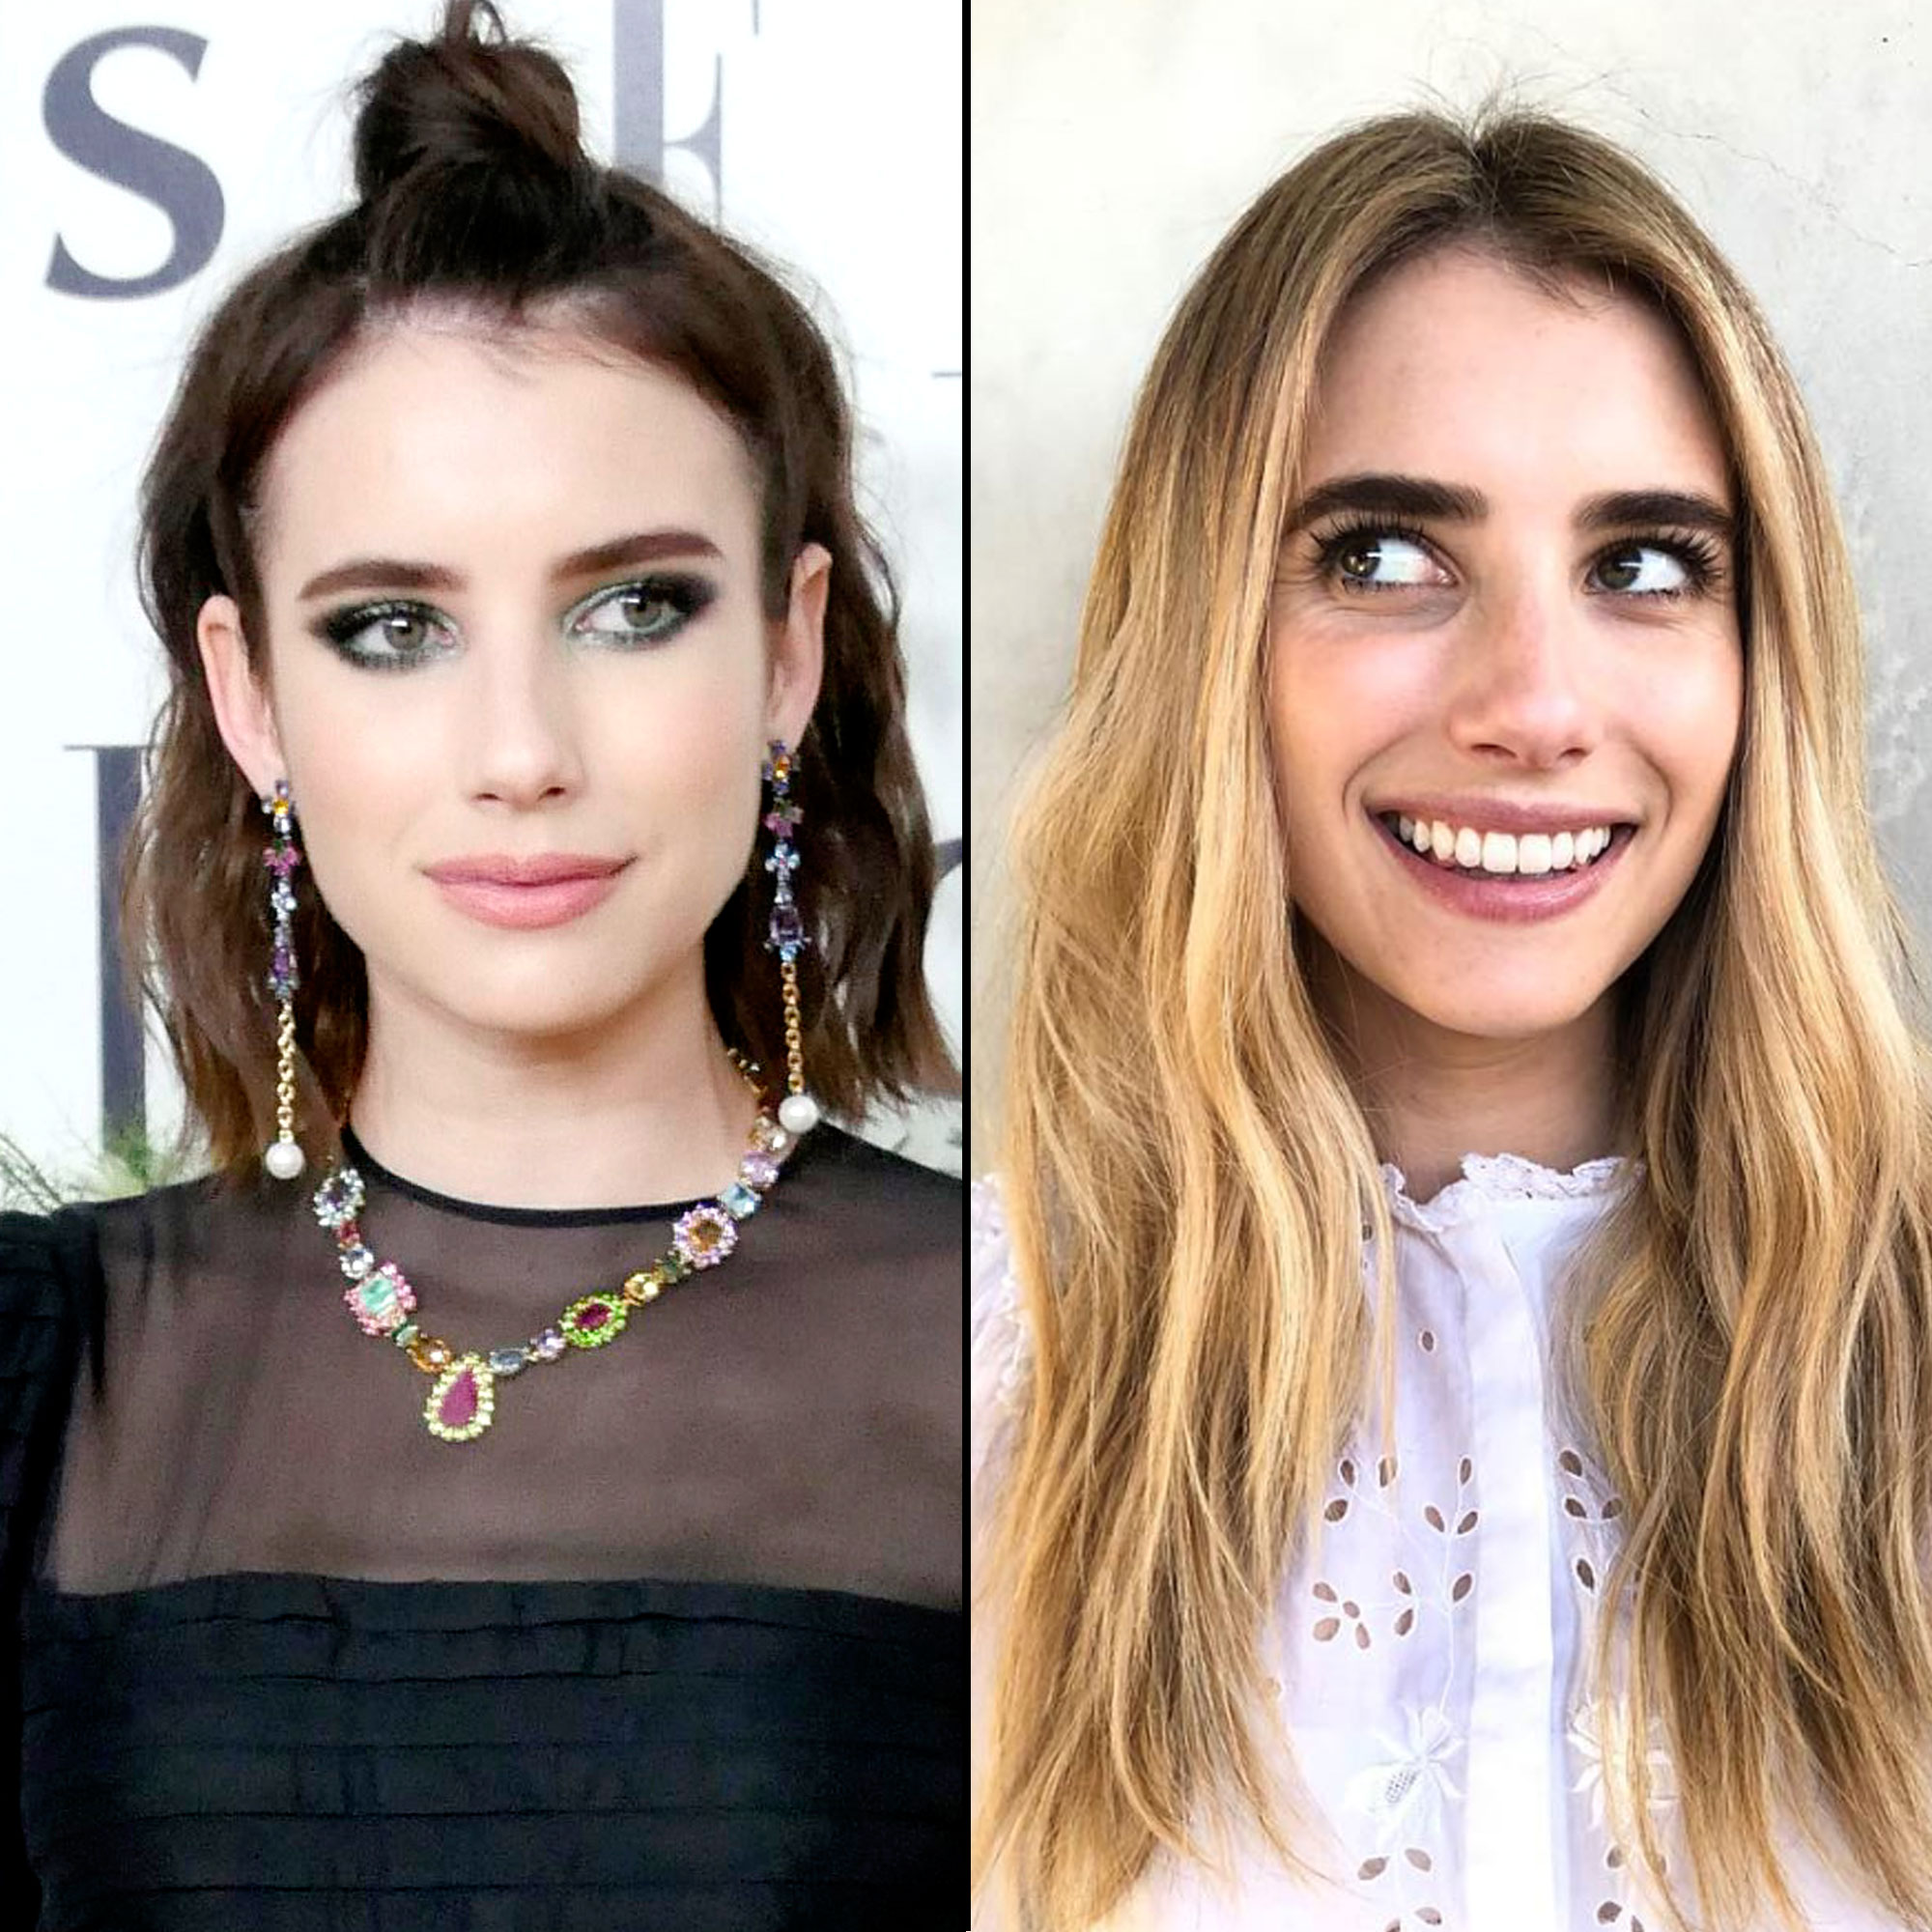 """Emma Roberts new hair transformation - Rocking fresh long strands, the American Horror Story actress showed off her lighter """"sunrise blonde"""" shade just in time for summer on April 25."""